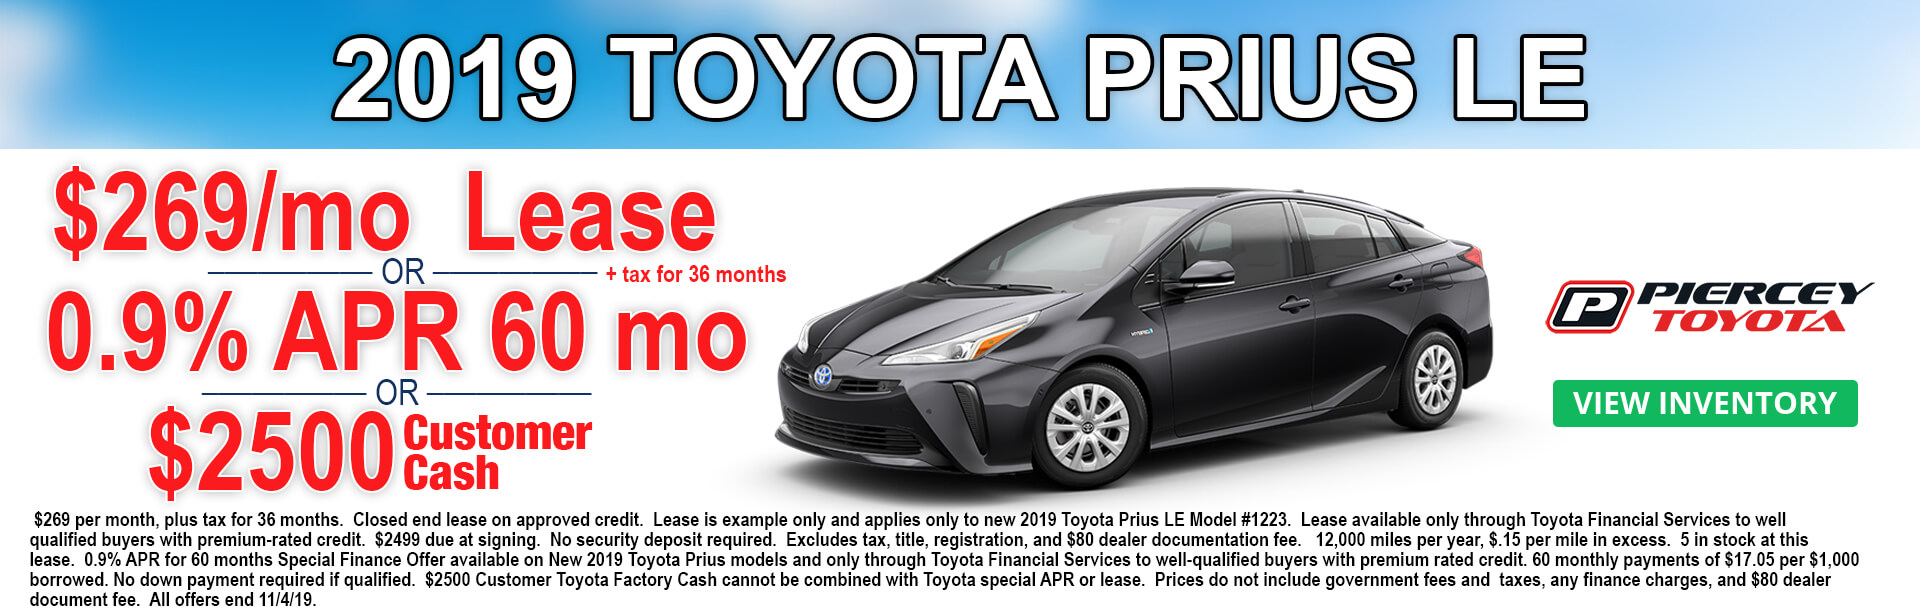 2019 Toyota Prius Lease Offer $269 per month 36 months